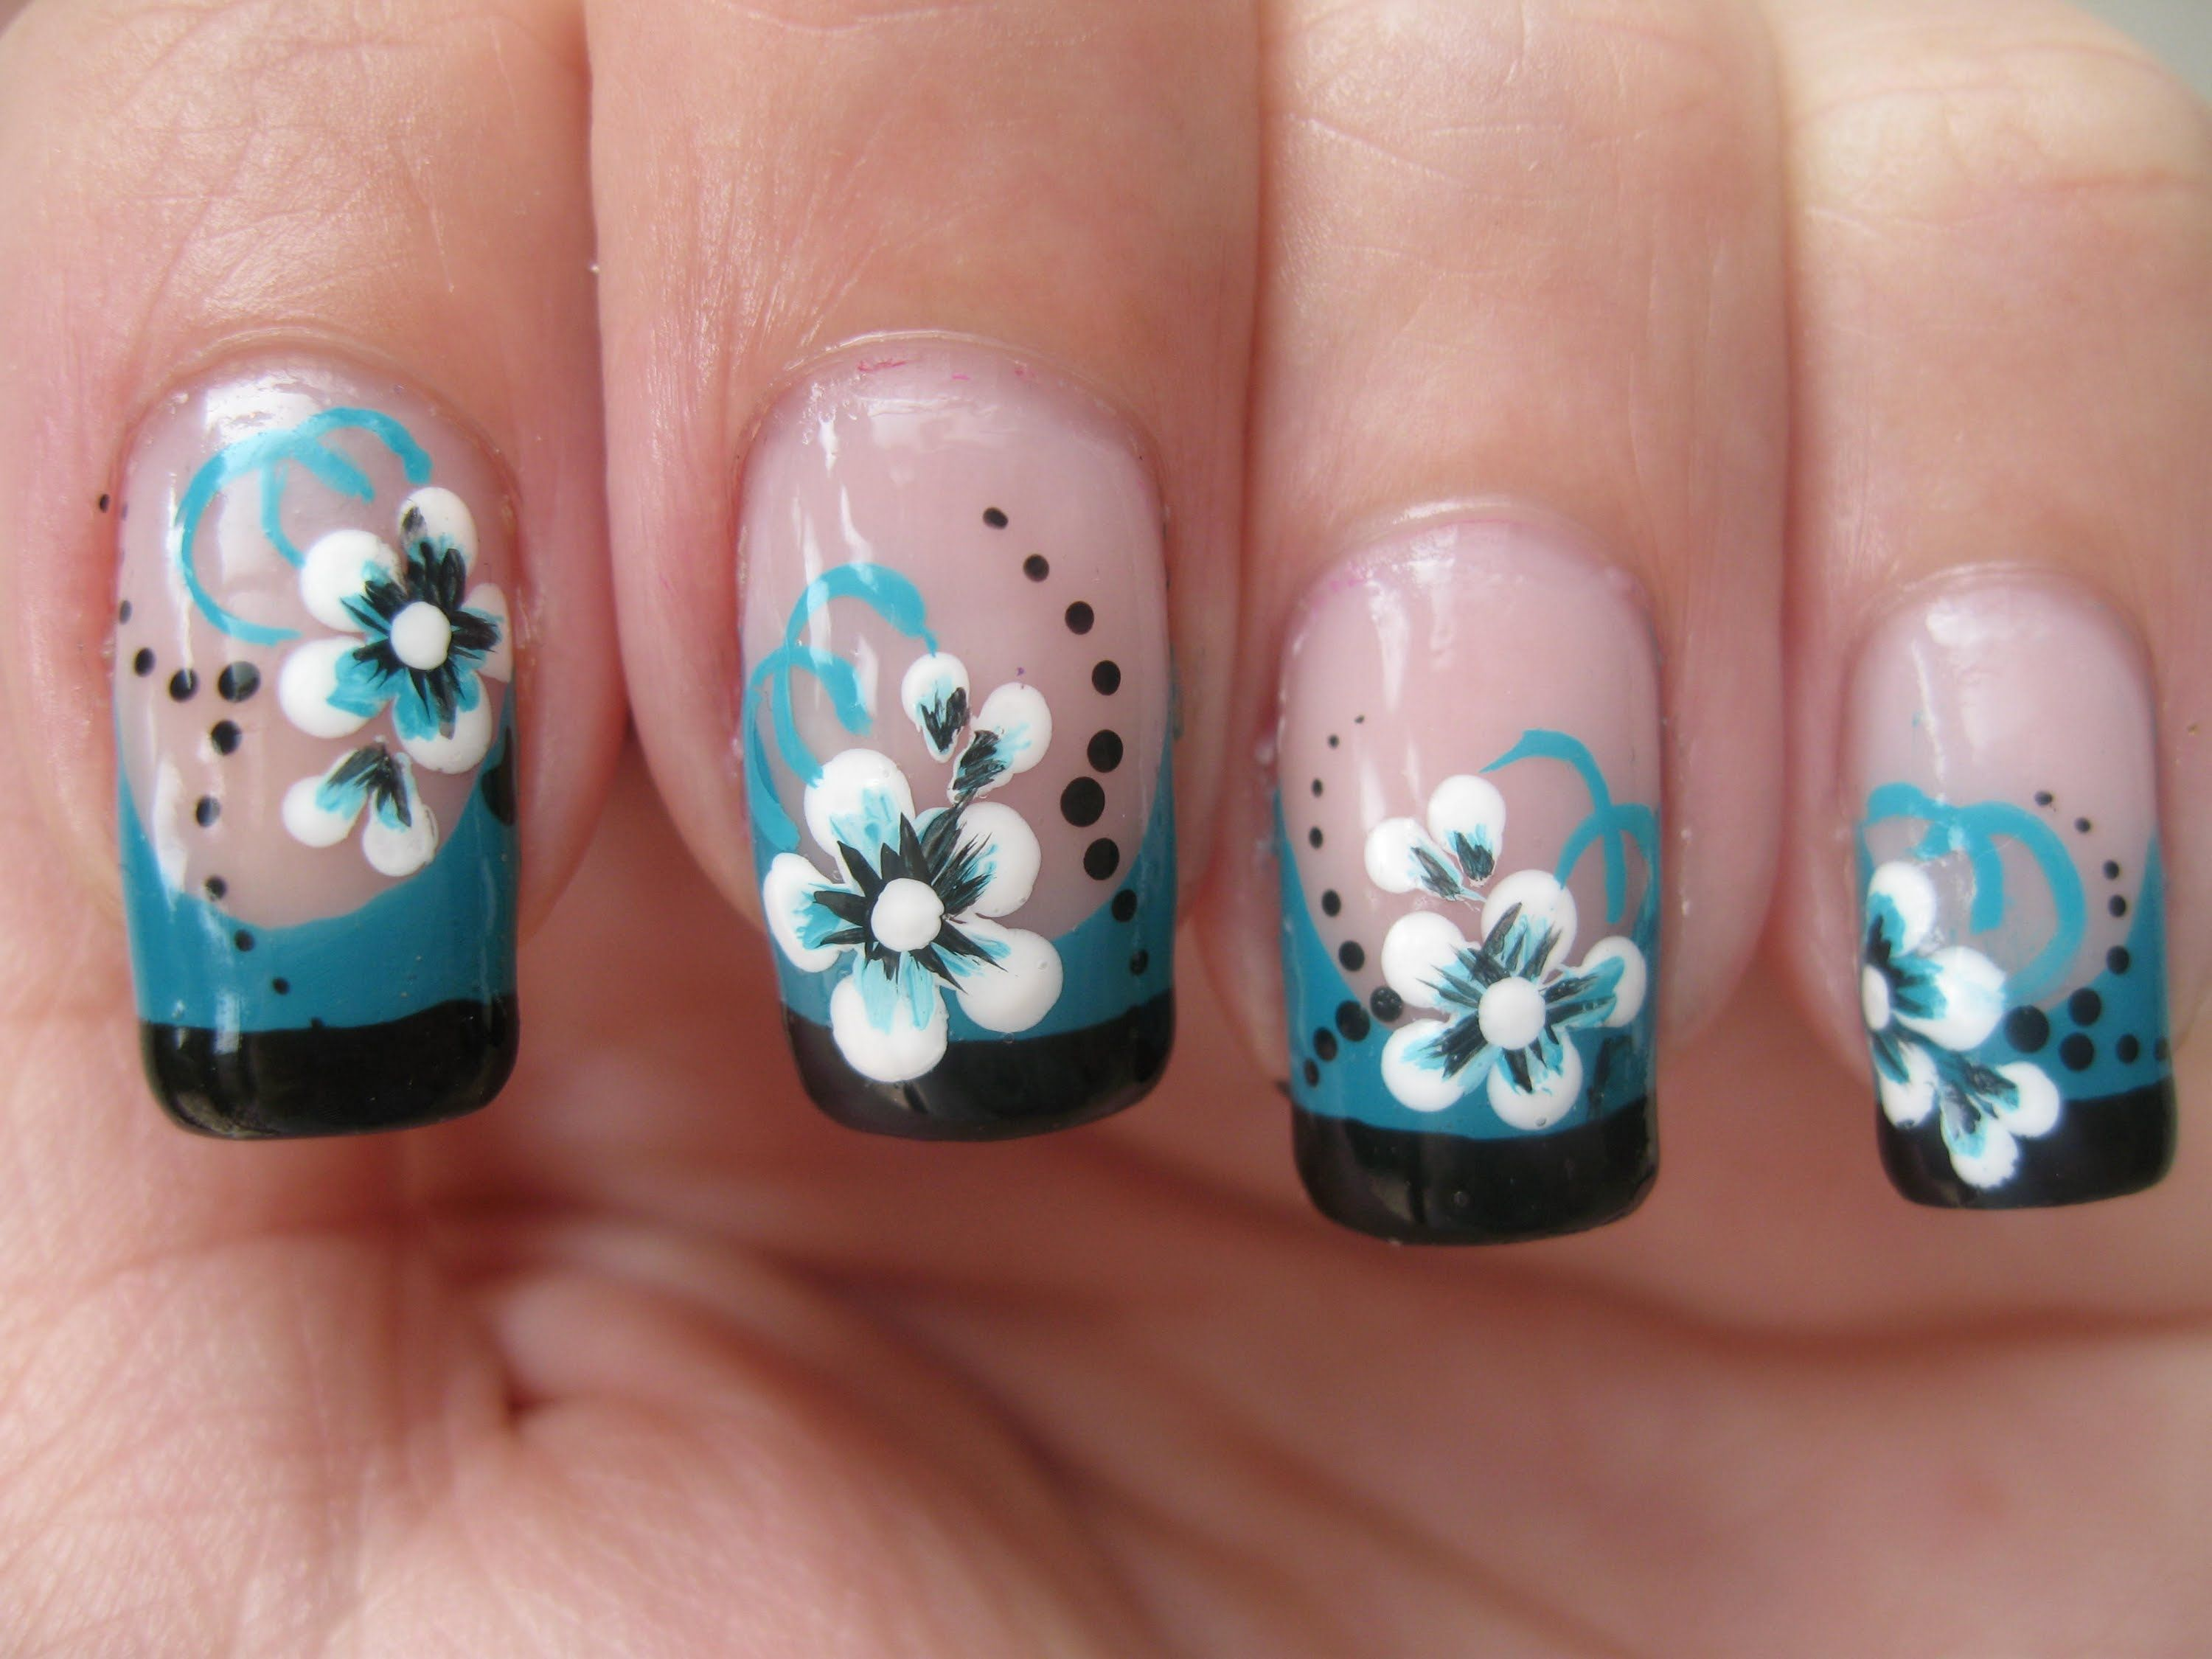 Nail art: Double colored french tip with flower | Just Nails ...